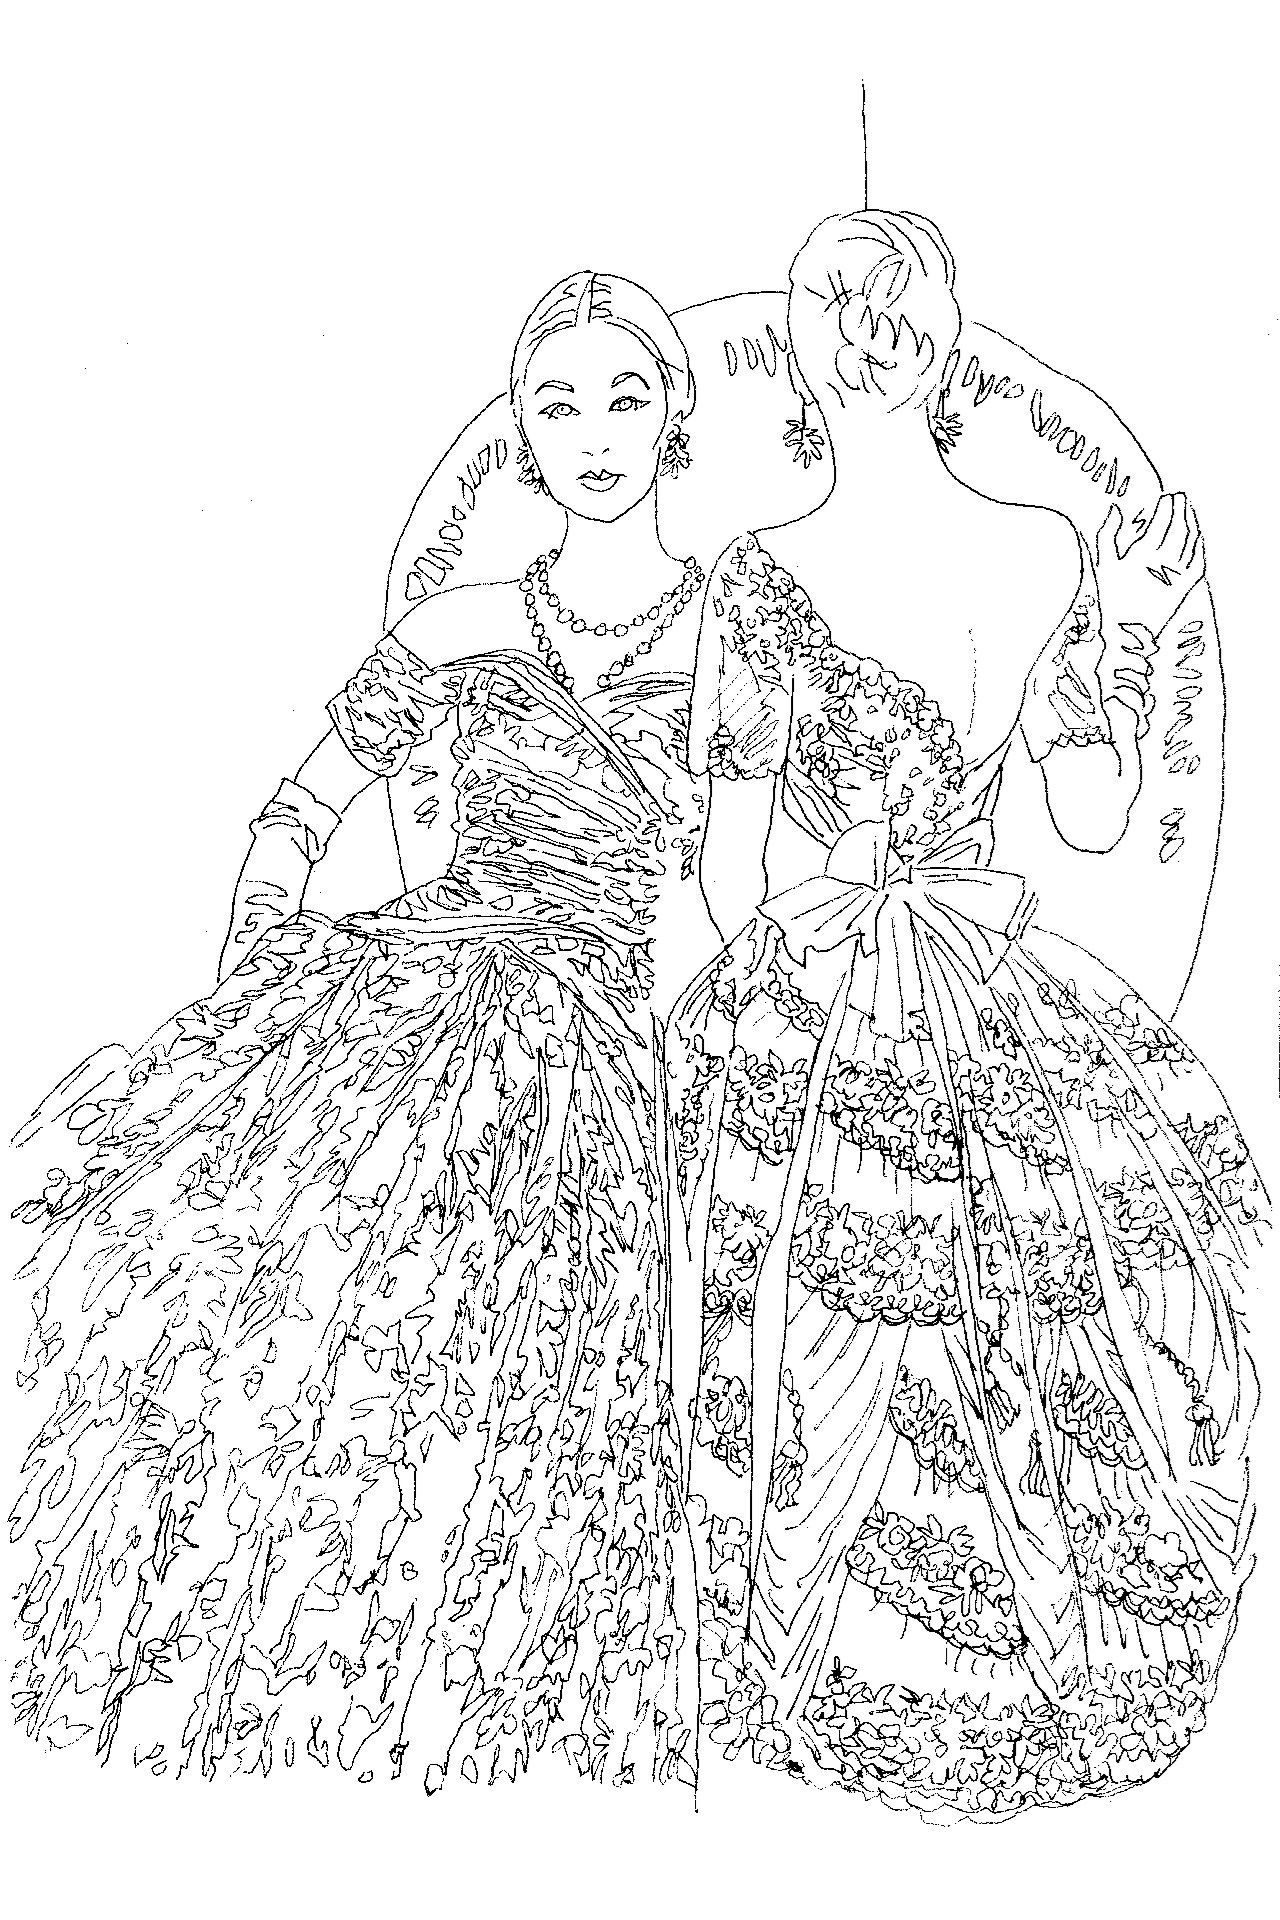 Introducing The Vogue Colouring Book Coloring Books Fashion Coloring Book Coloring Pages